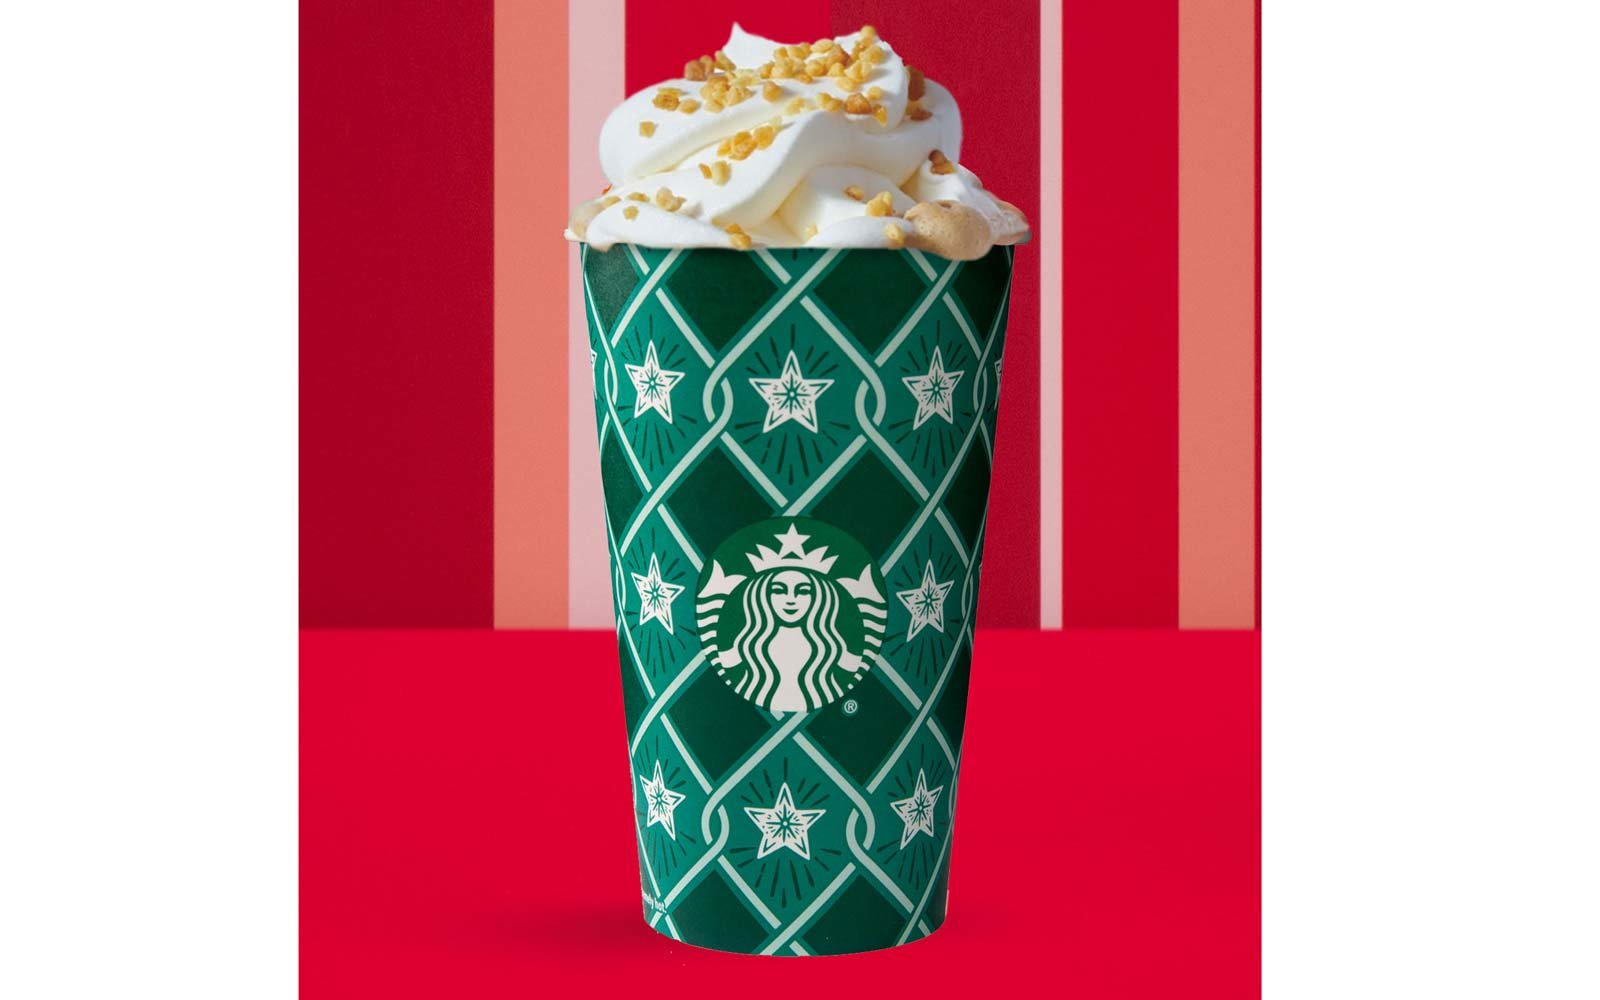 Toffee Nut Crunch Latte (China, Asia Pacific, Latin America, Europe)